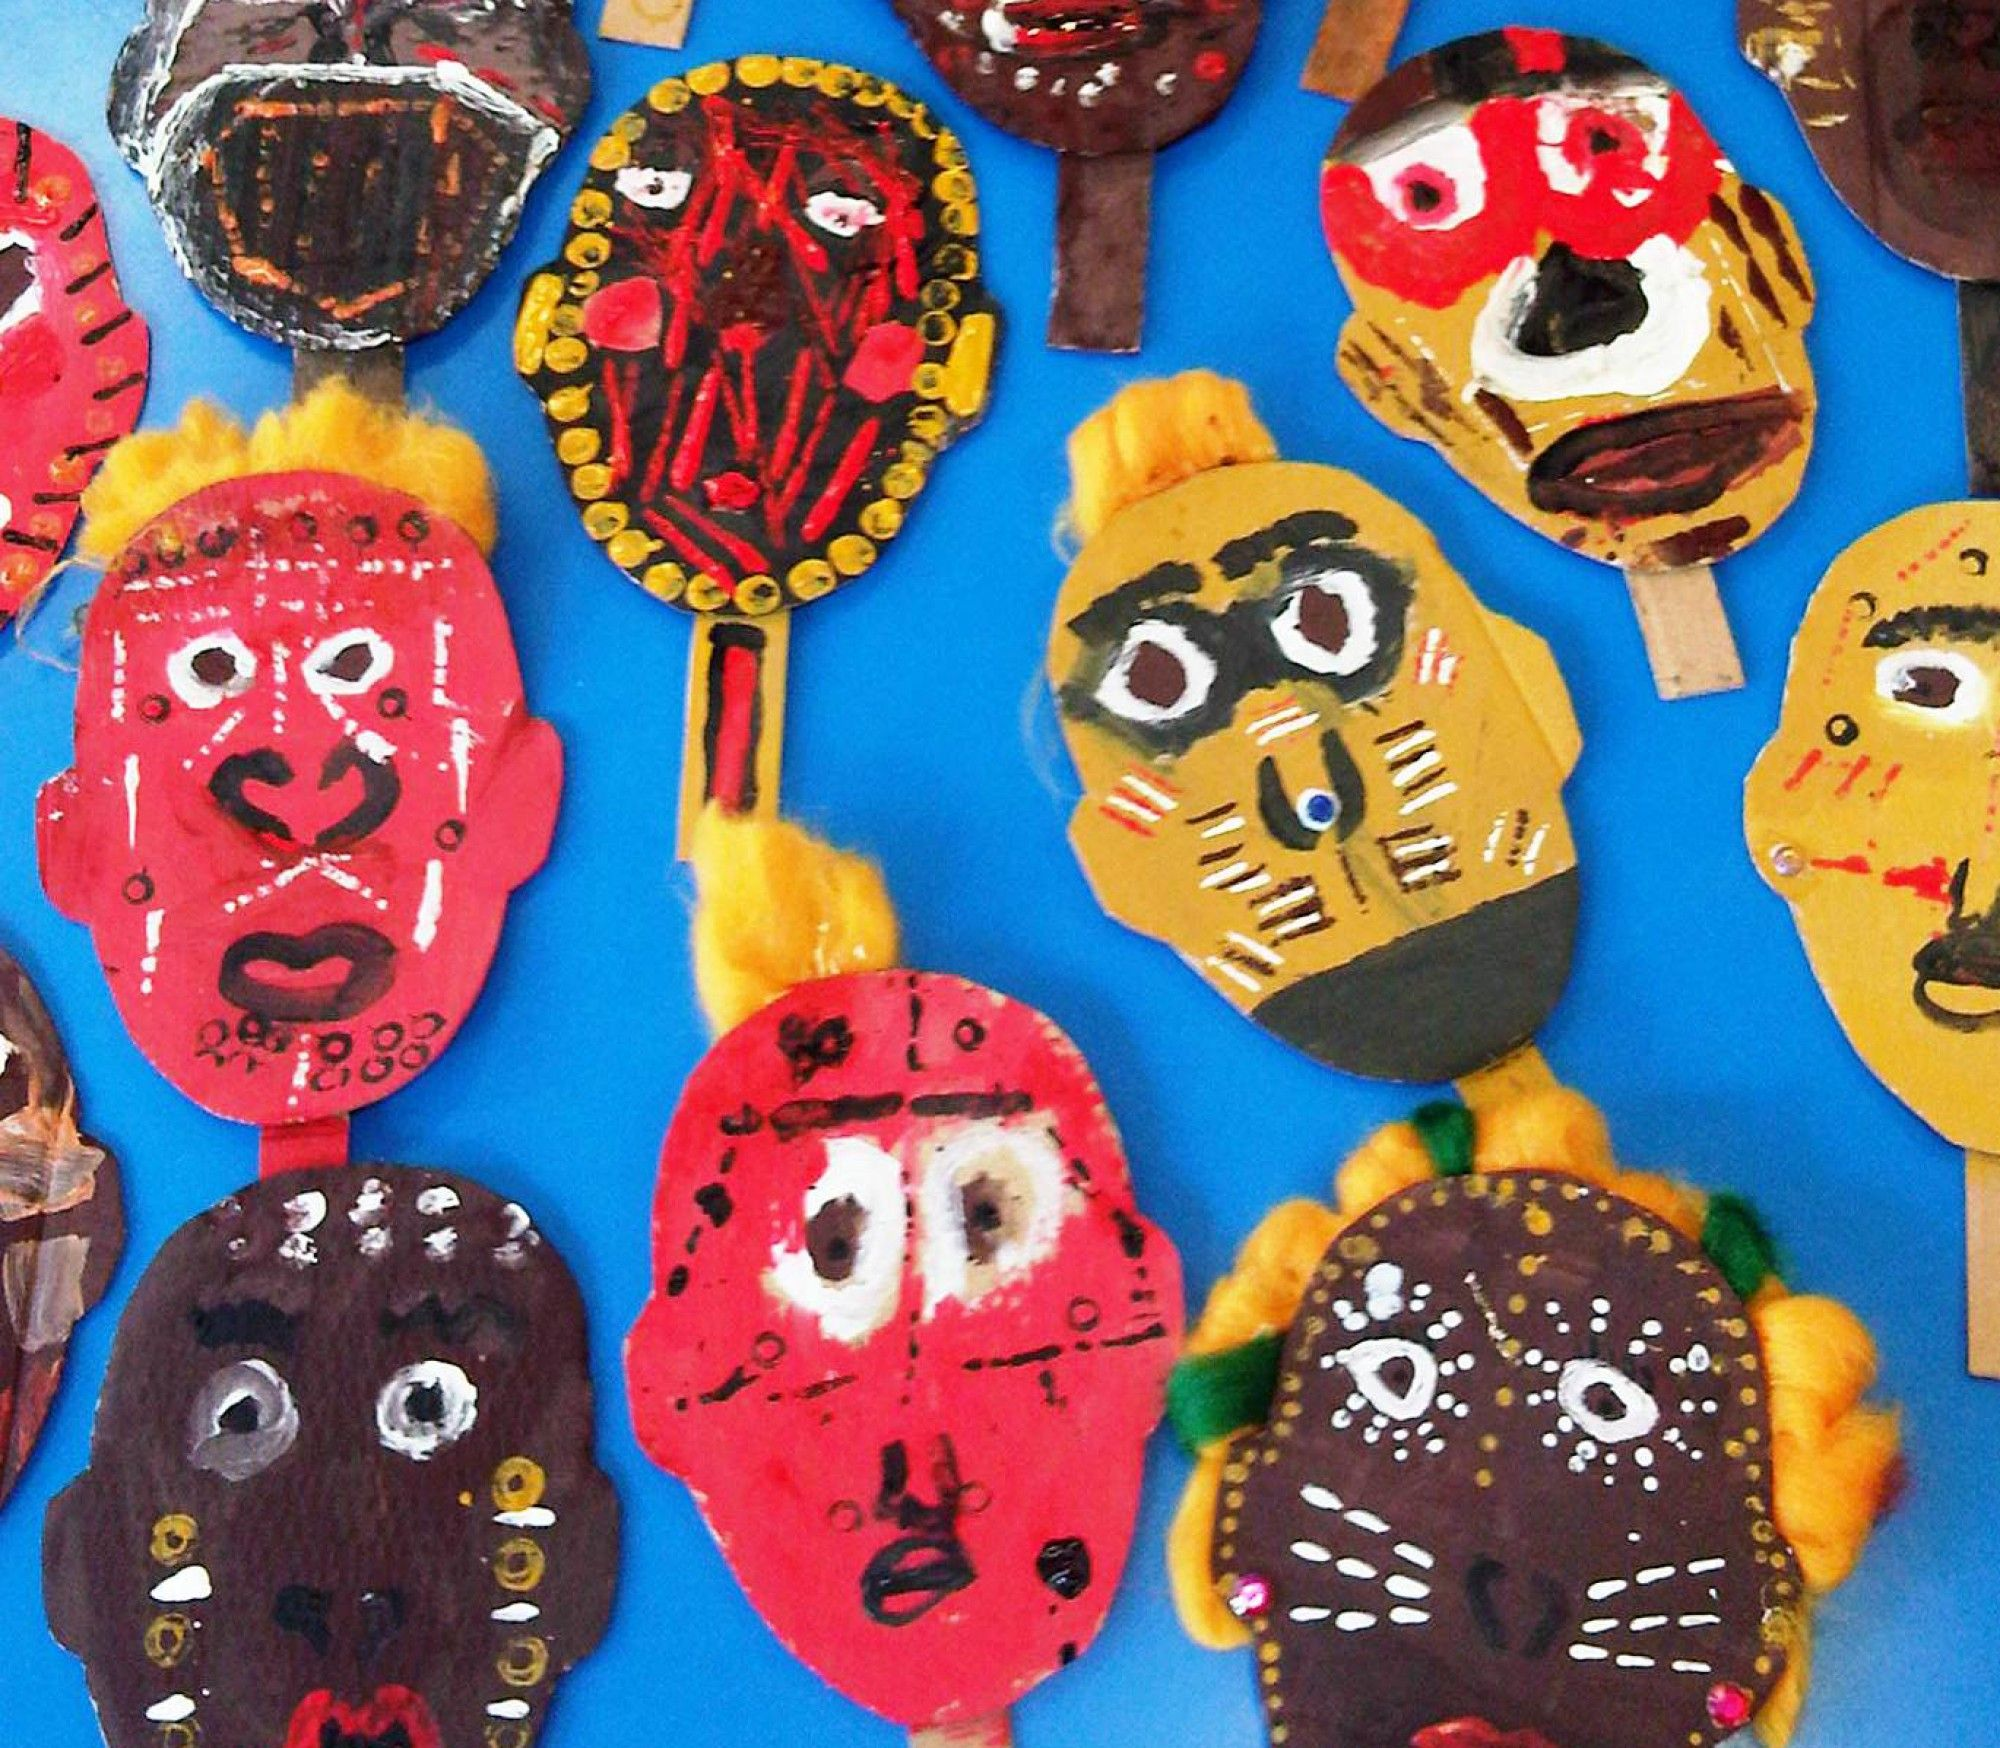 African Masks I Love African Art And Design And The Use Of